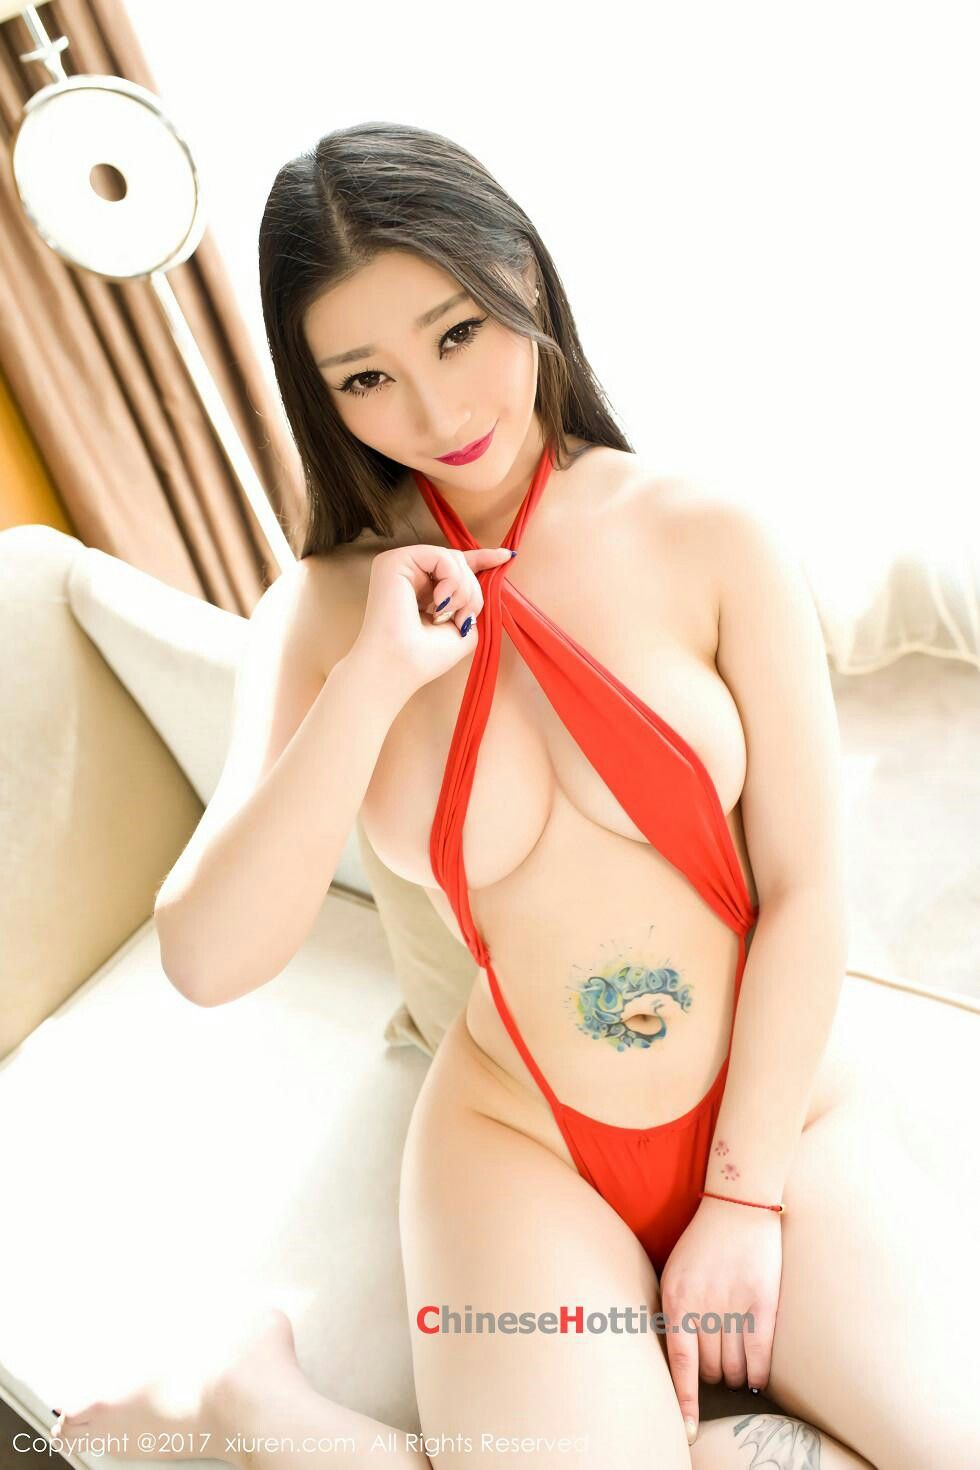 Asian fetish model